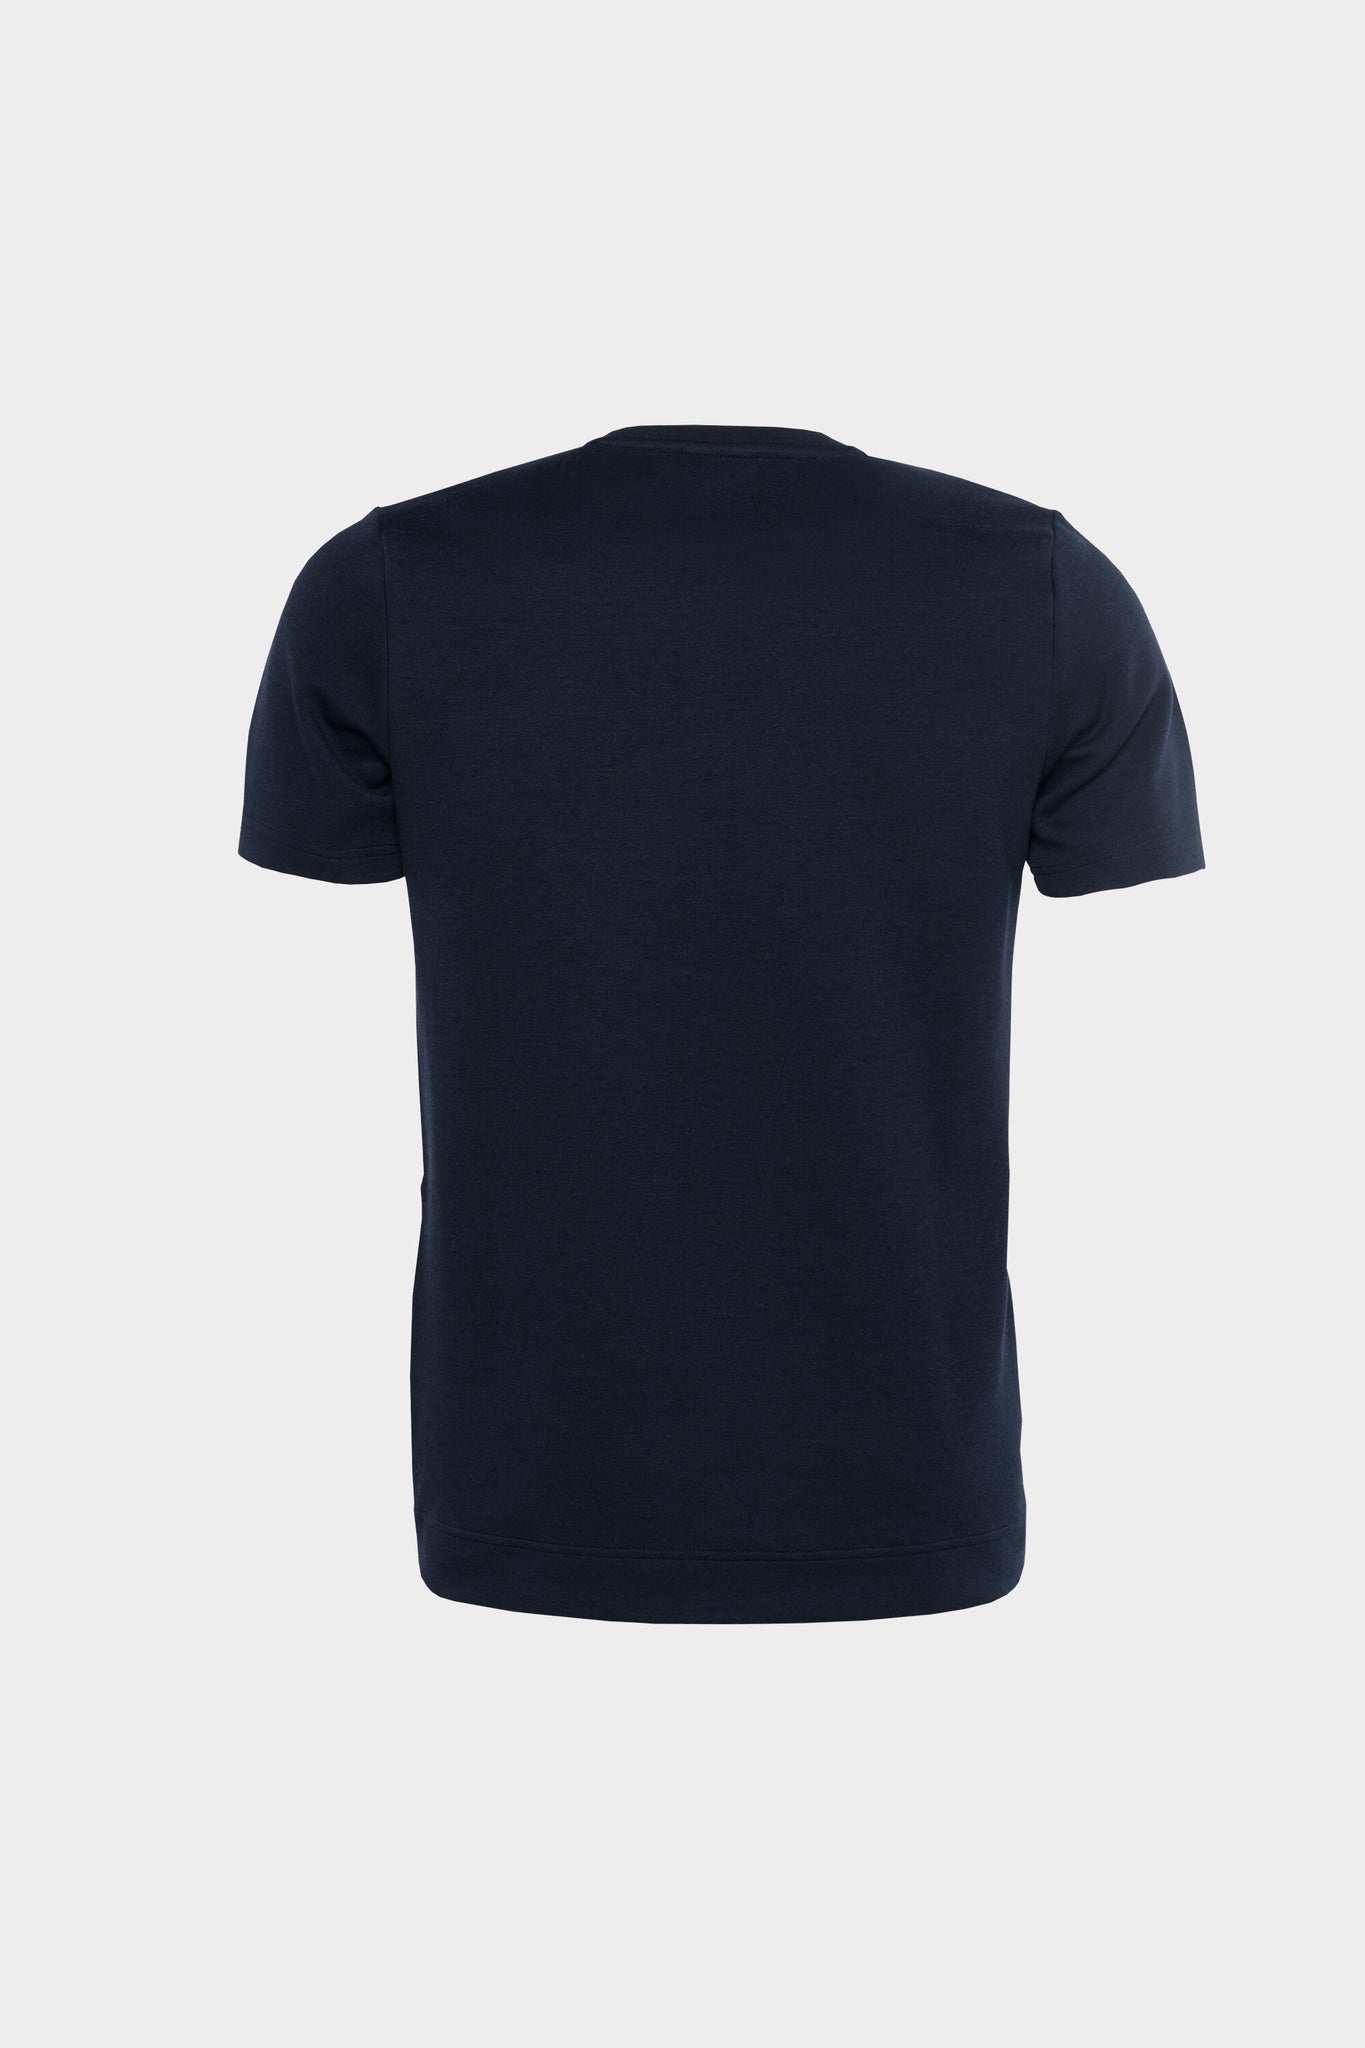 Q-Series Straight T-shirt Men Navy Blue